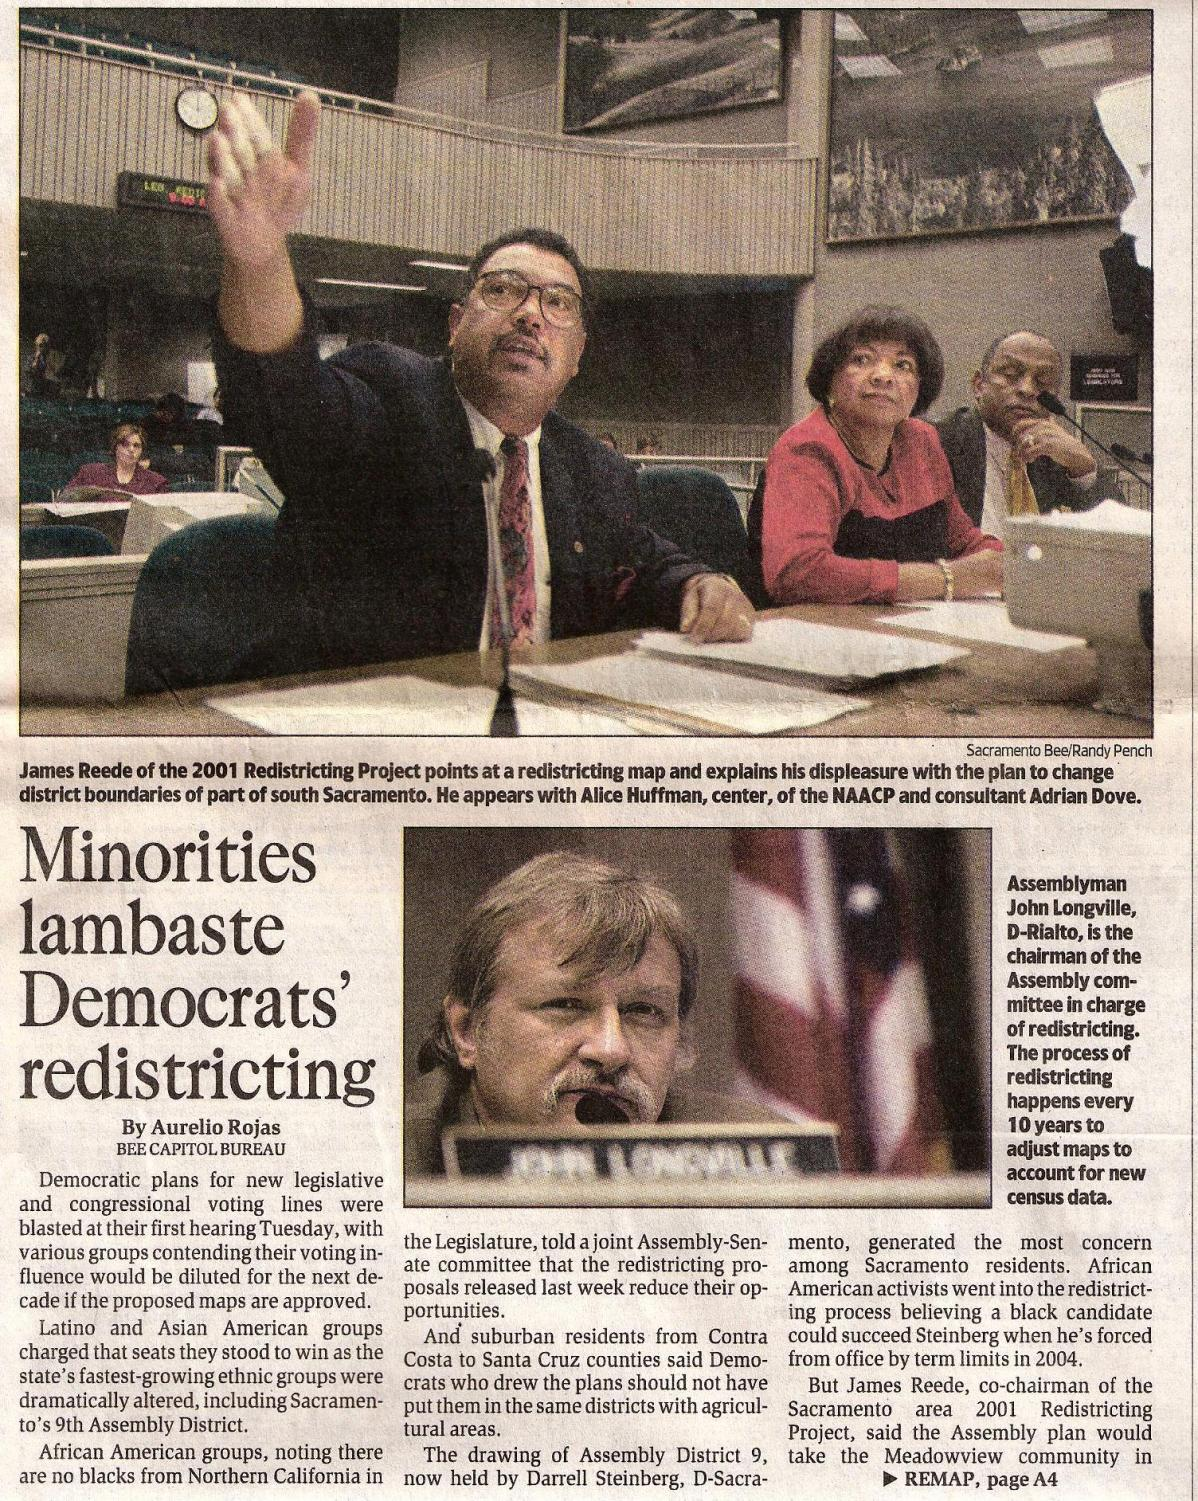 An article in the Sacramento Bee from 2001 featuring James Reede and his work with the Sacramento redistricting project. Reede said he got involved in redistricting to ensure there was equal representation and that districts were drawn equally. Photo courtesy of James Reede.